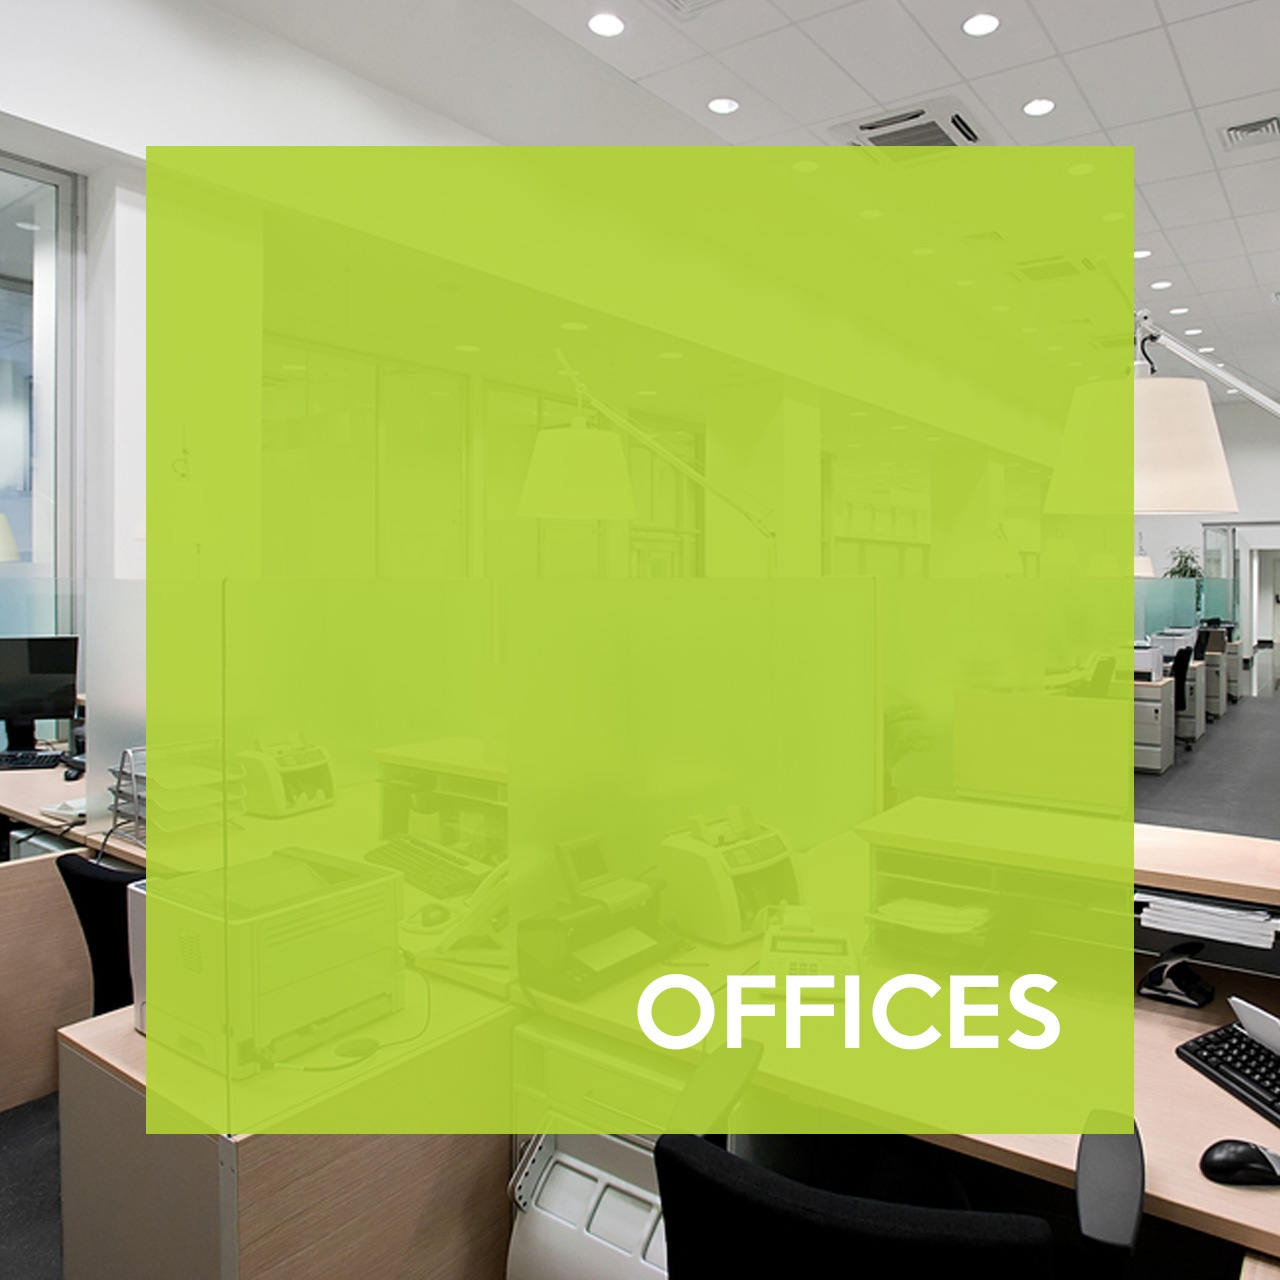 AMI_COMMERCIAL__office_-_016.jpg